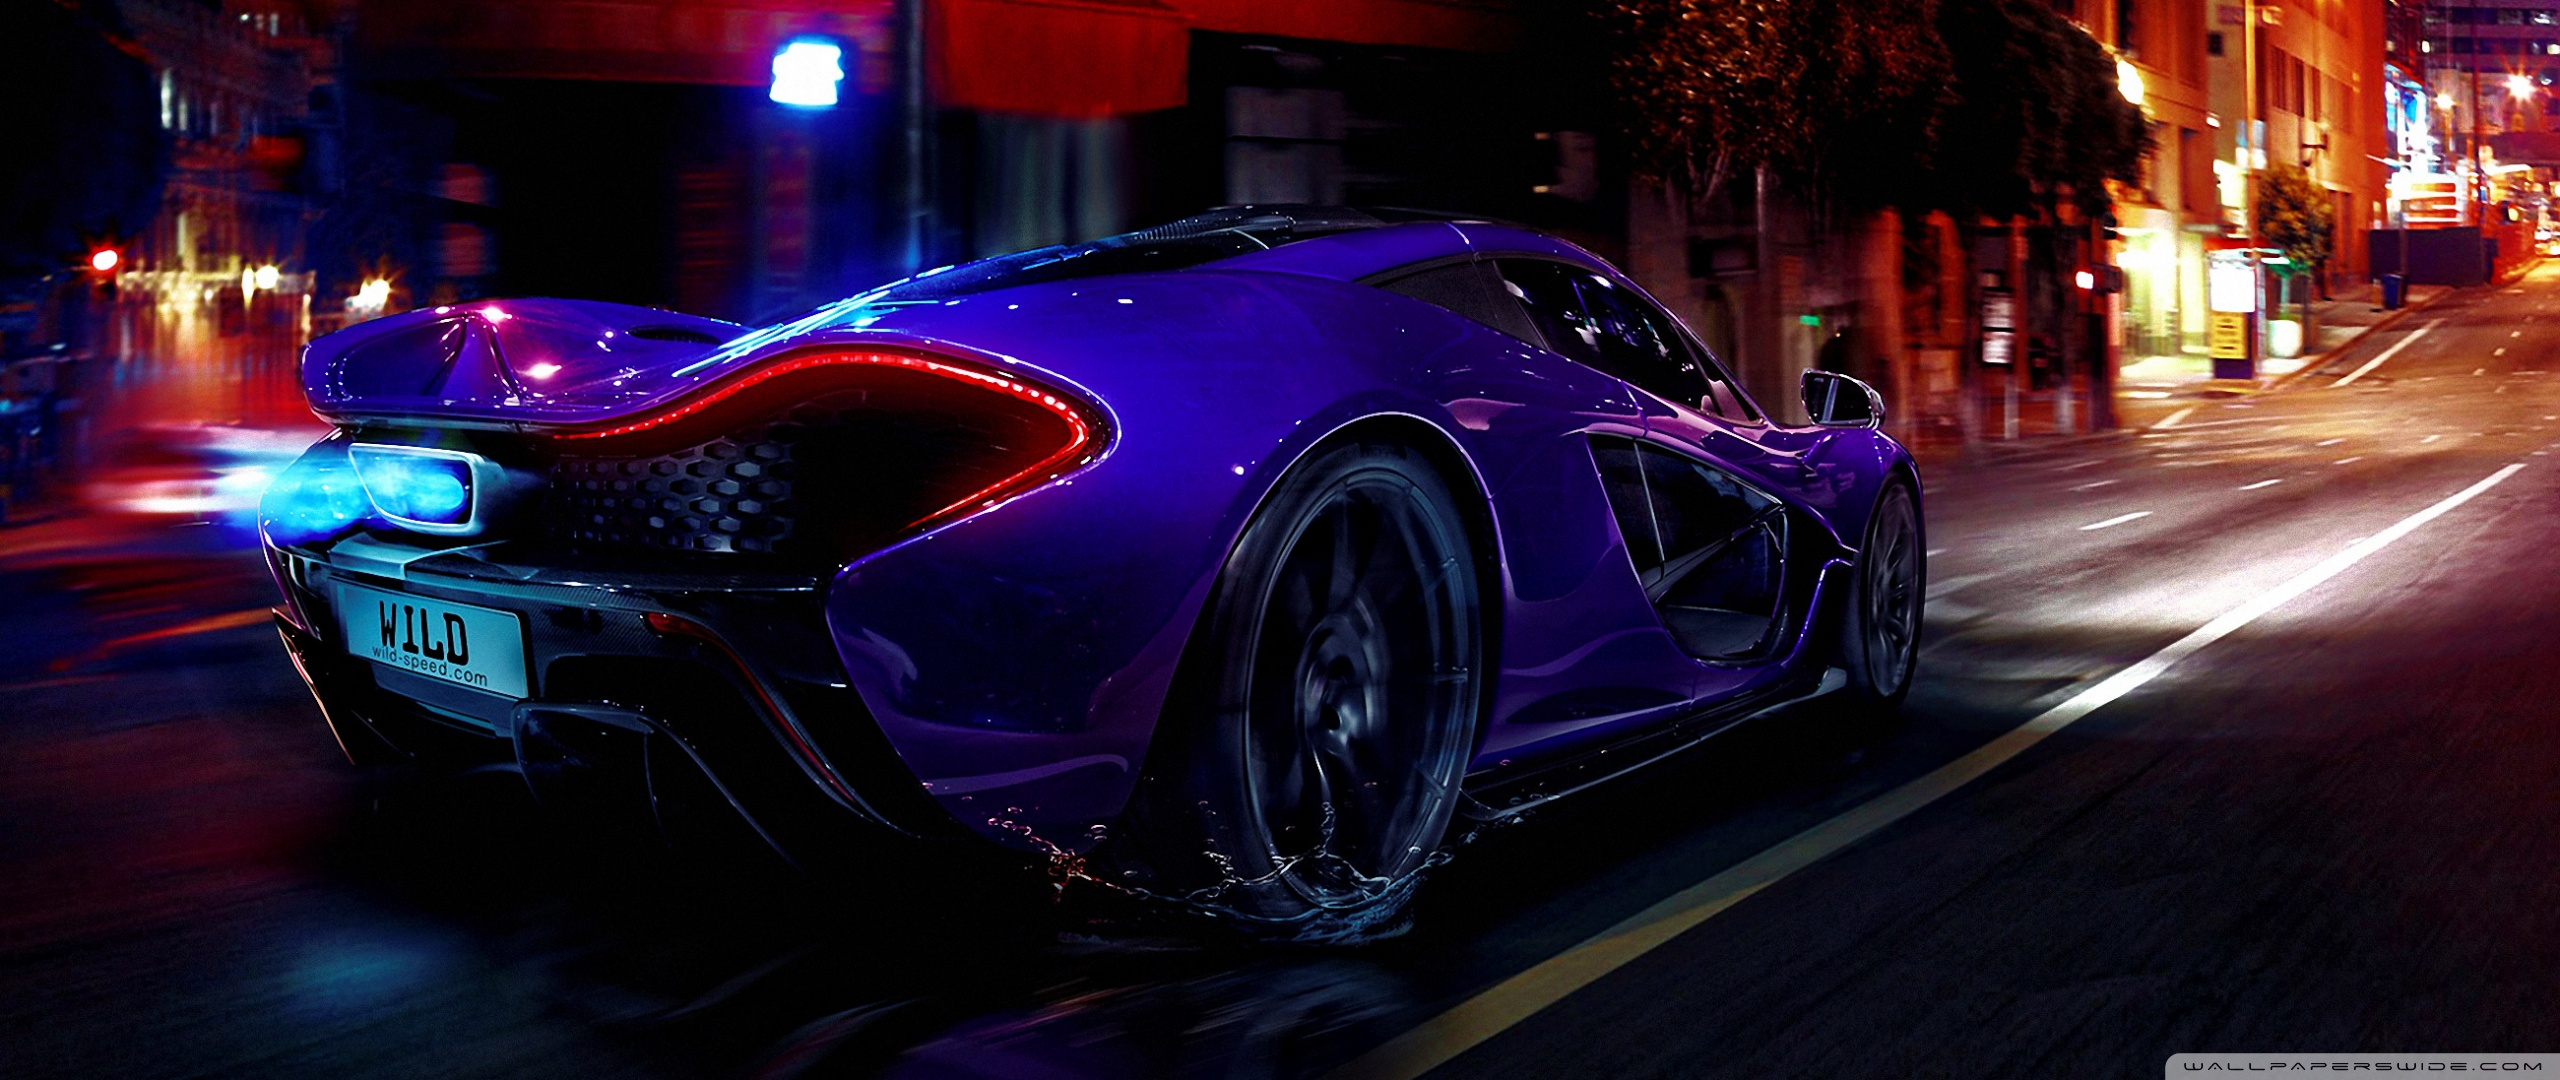 1920x1280 Wallpaper Cars Wild Speed 4k Hd Desktop Wallpaper For Wide Amp Ultra